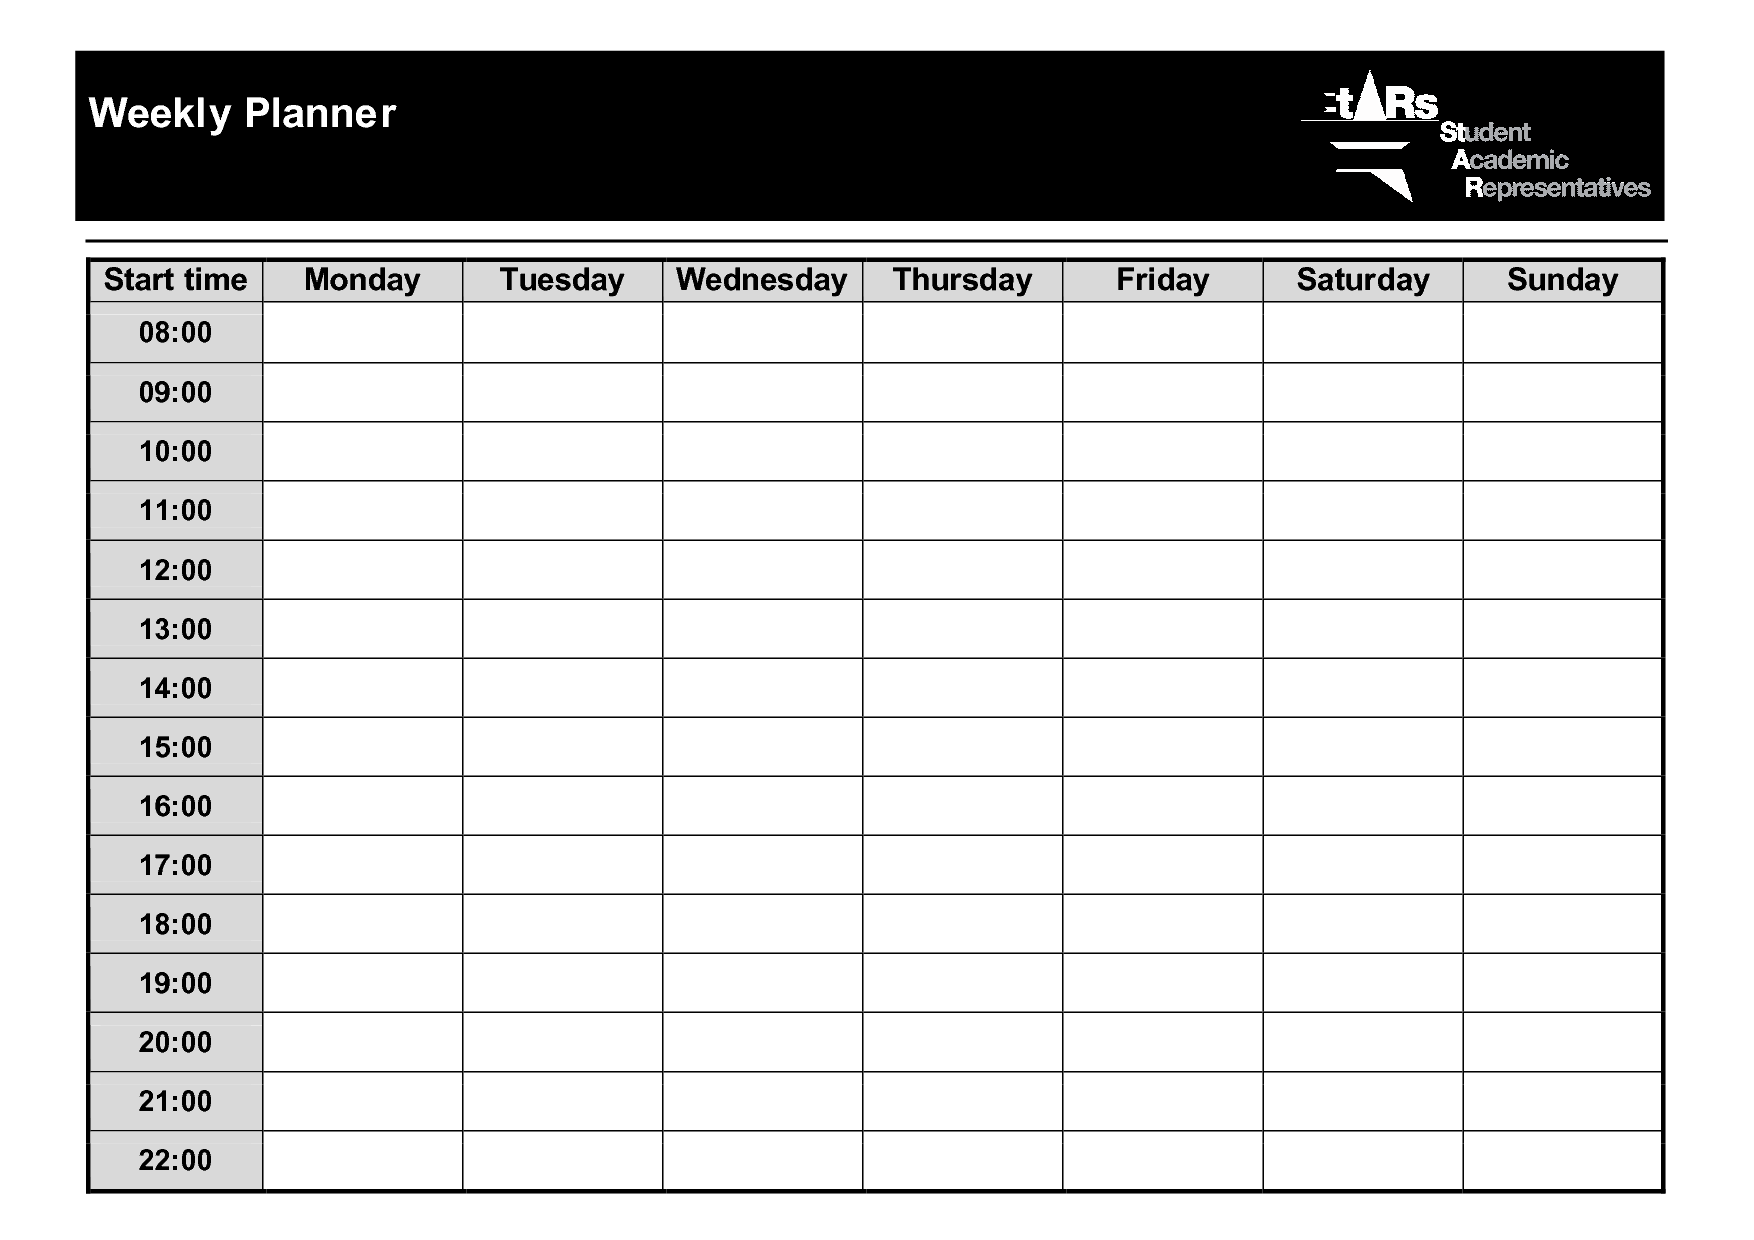 photograph relating to Week Planner Pdf called Weekly+Planner+Template+PDF planner Weekly planner